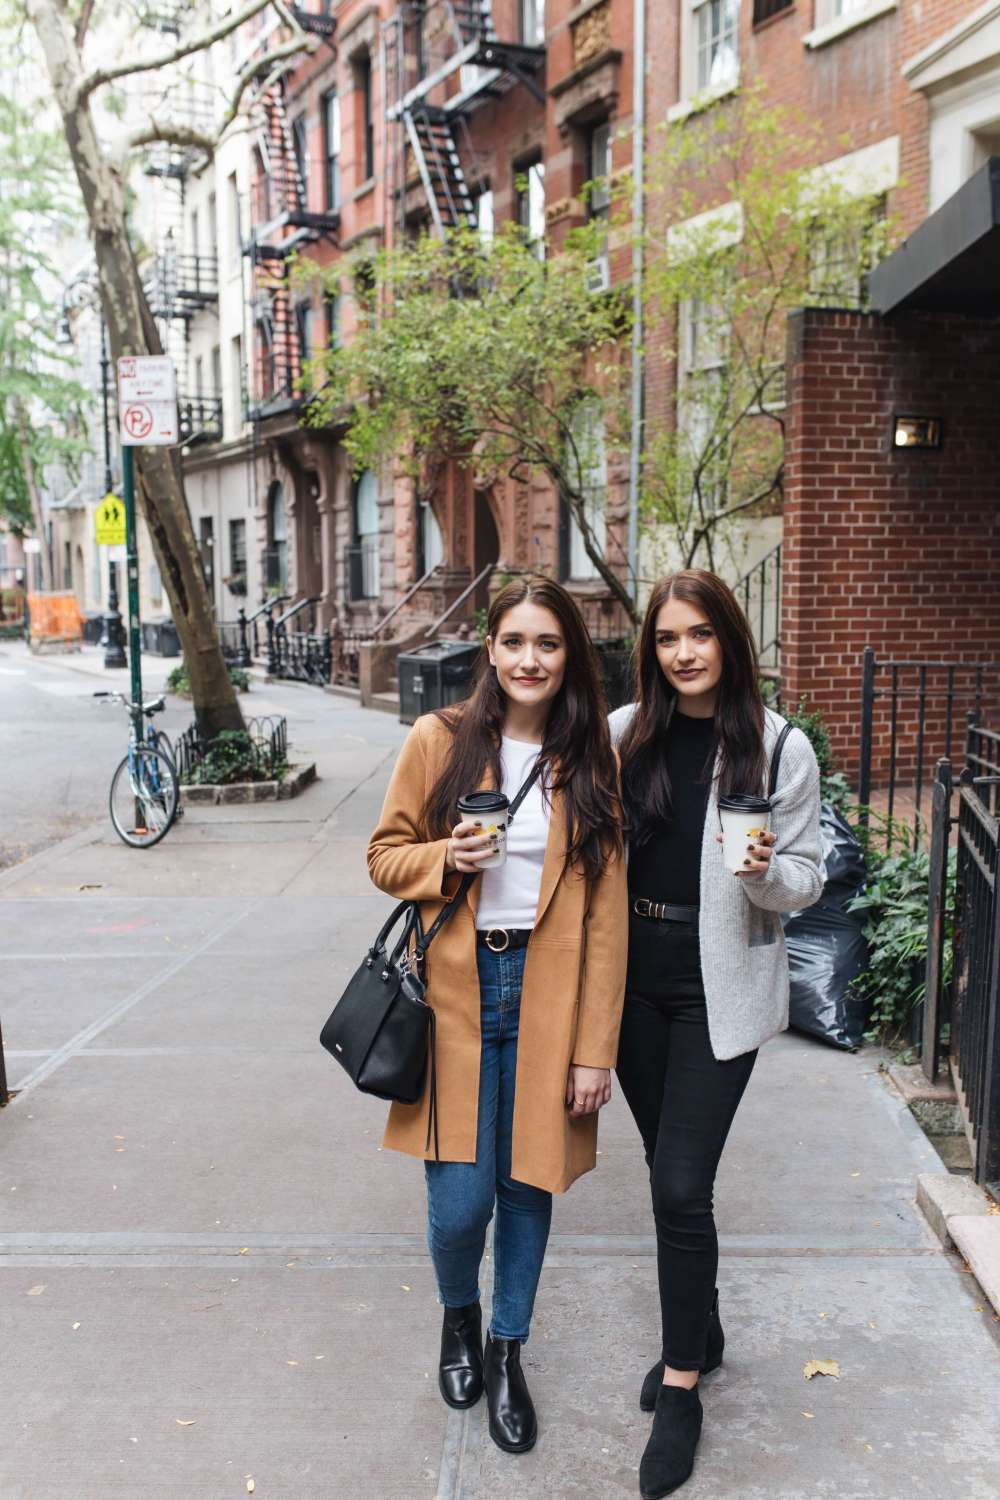 NYC Trip Recap | October 2017 - Greenwich Village